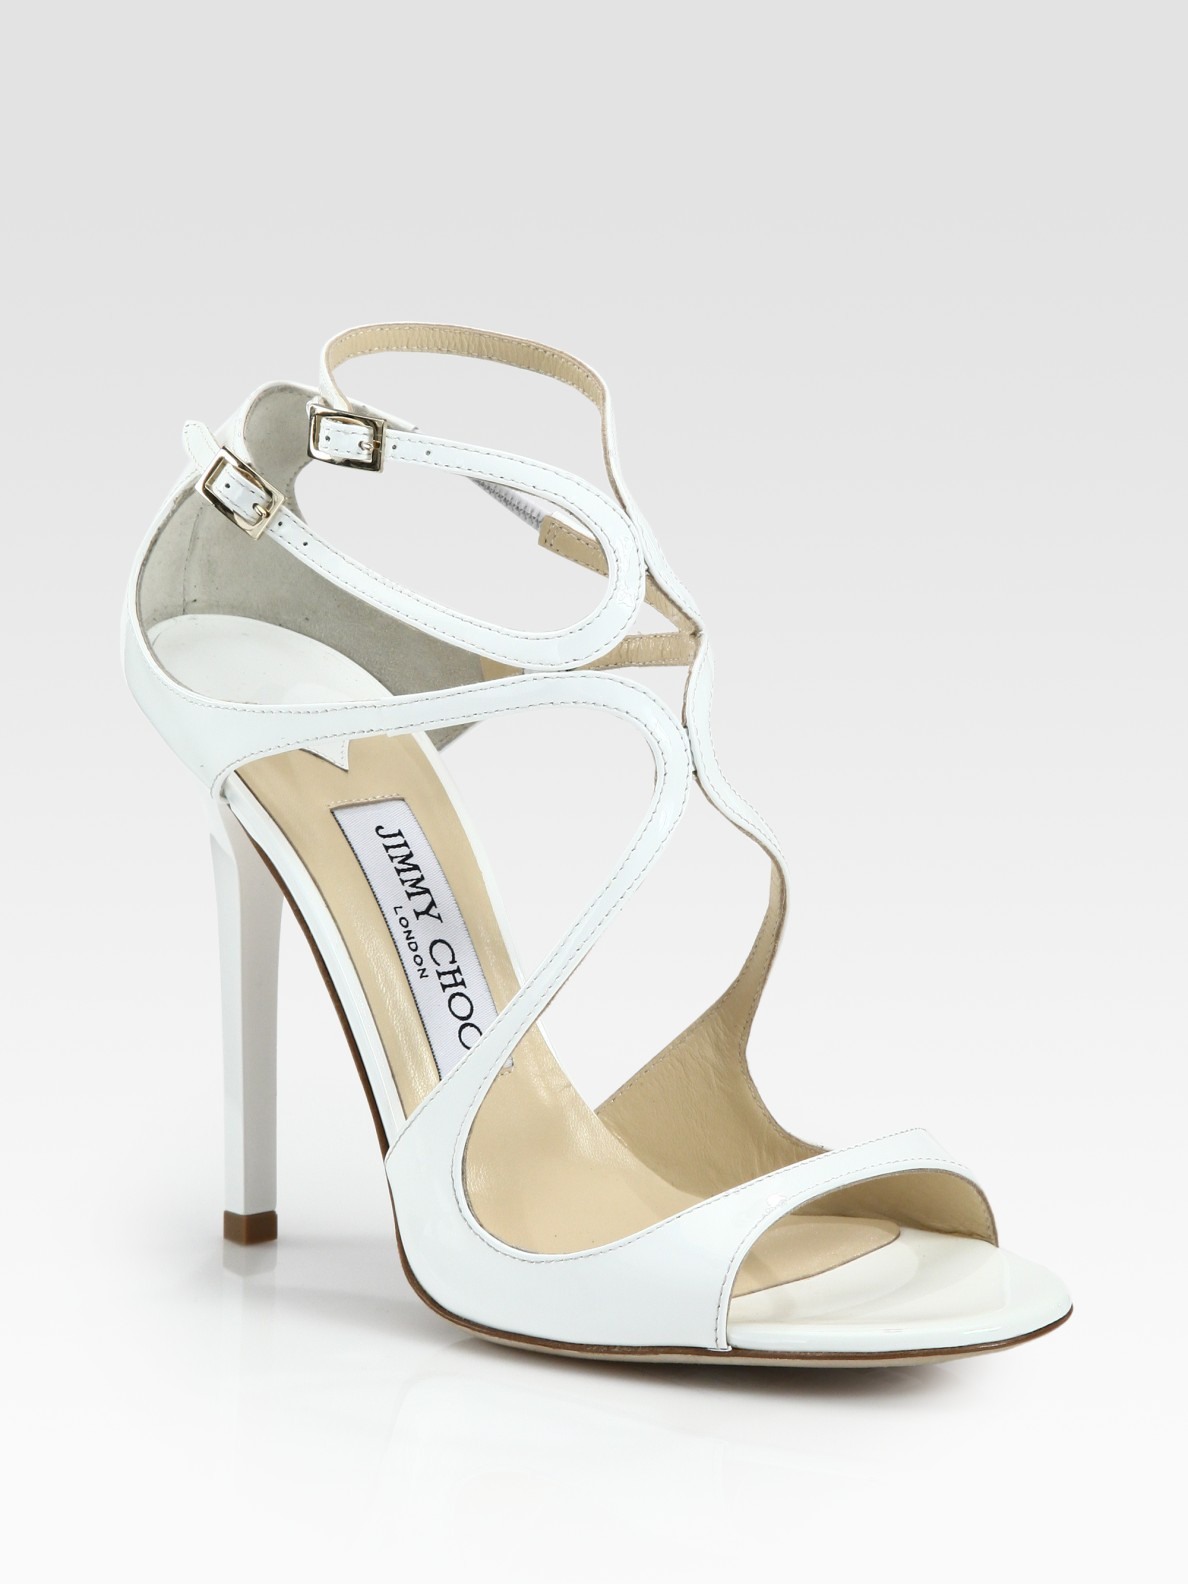 d83700dad054f Jimmy Choo Lance Patent Leather Sandals in White - Lyst